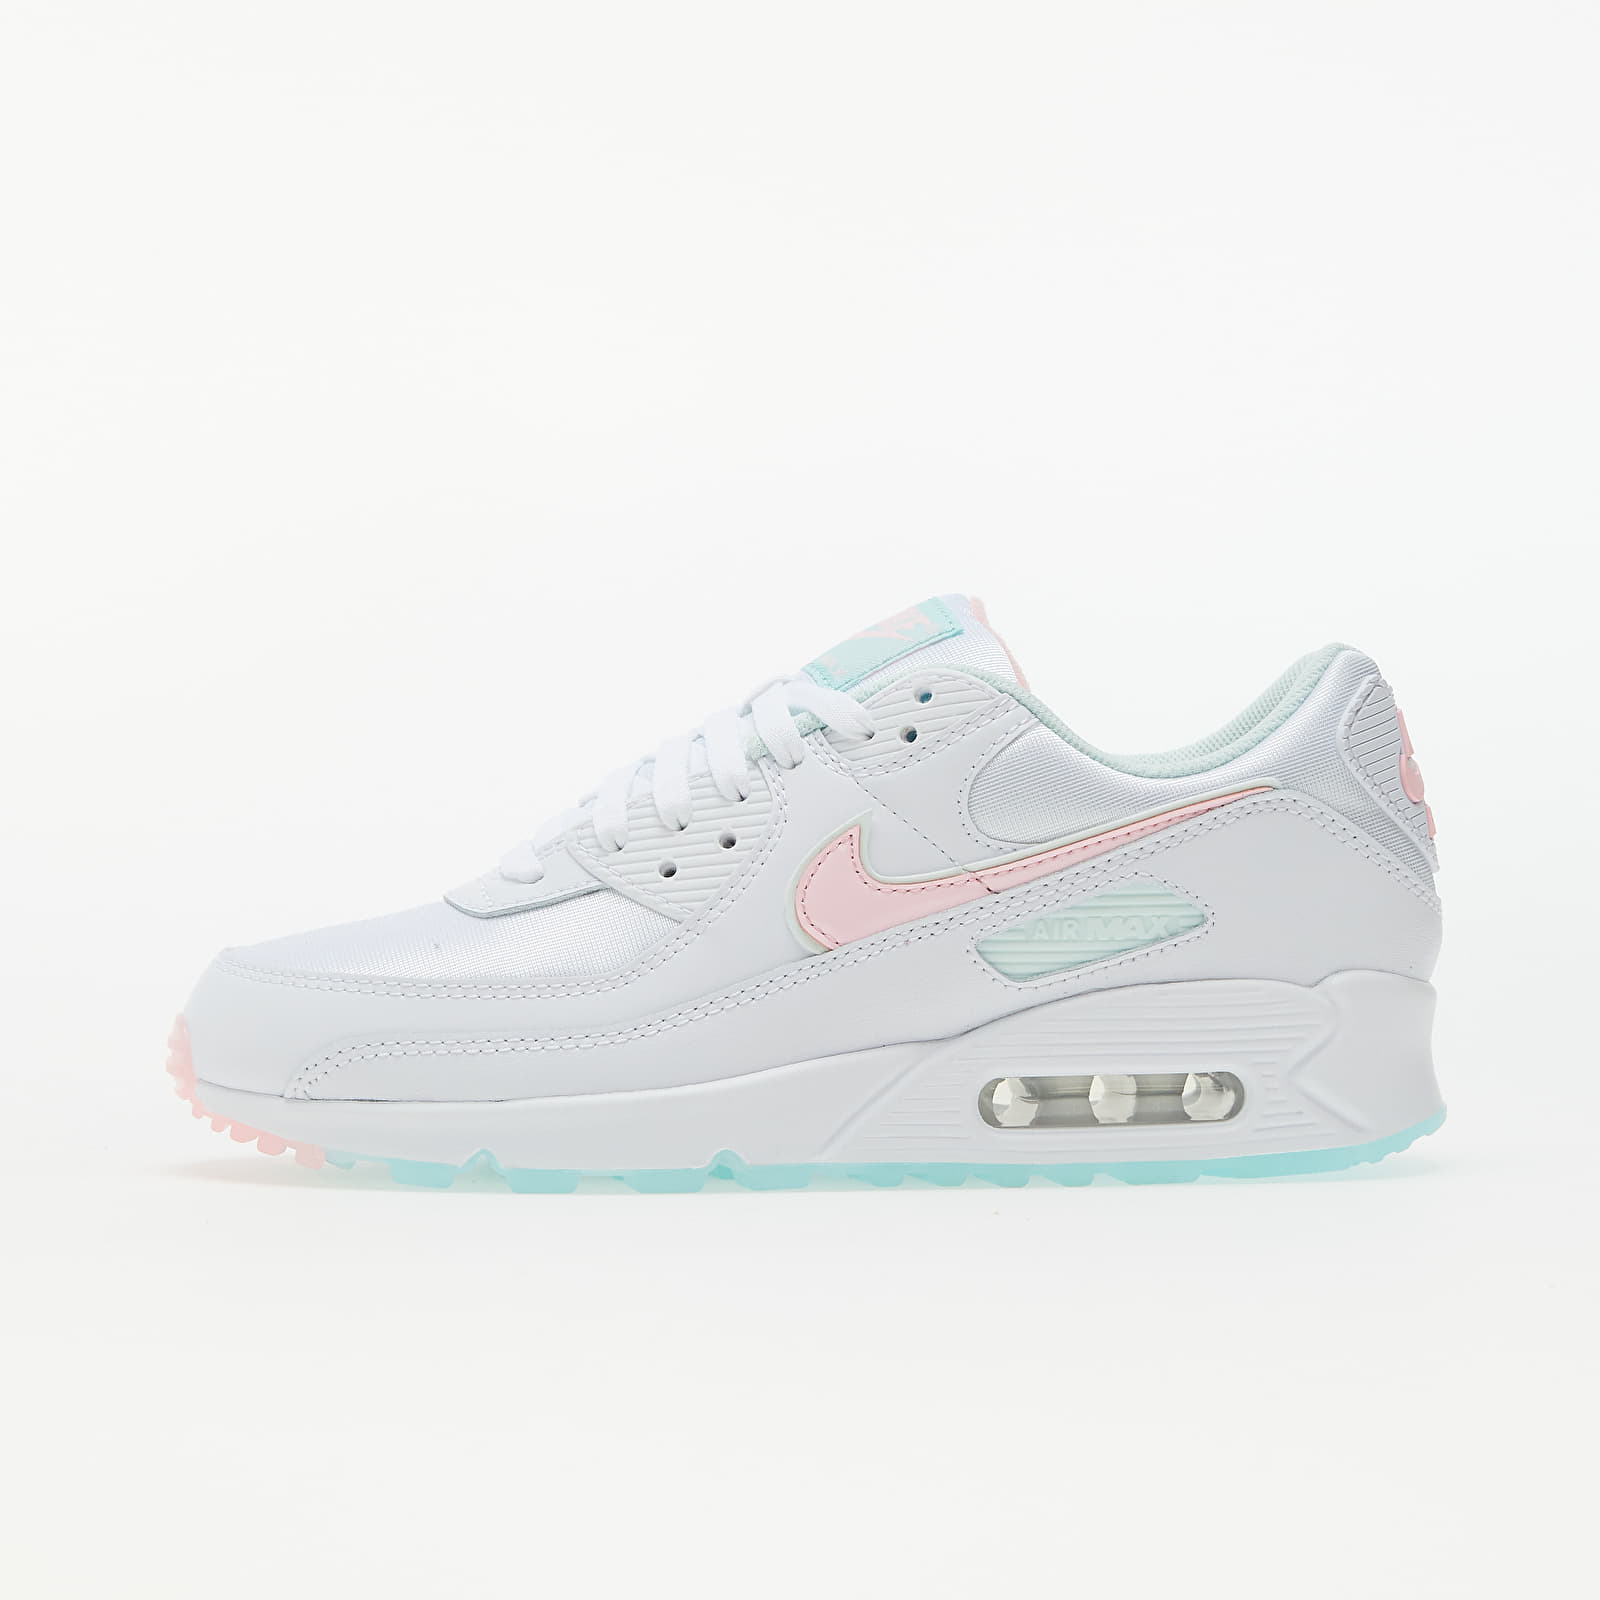 Nike W Air Max 90 White/ Arctic Punch-Barely Green DJ1493-100